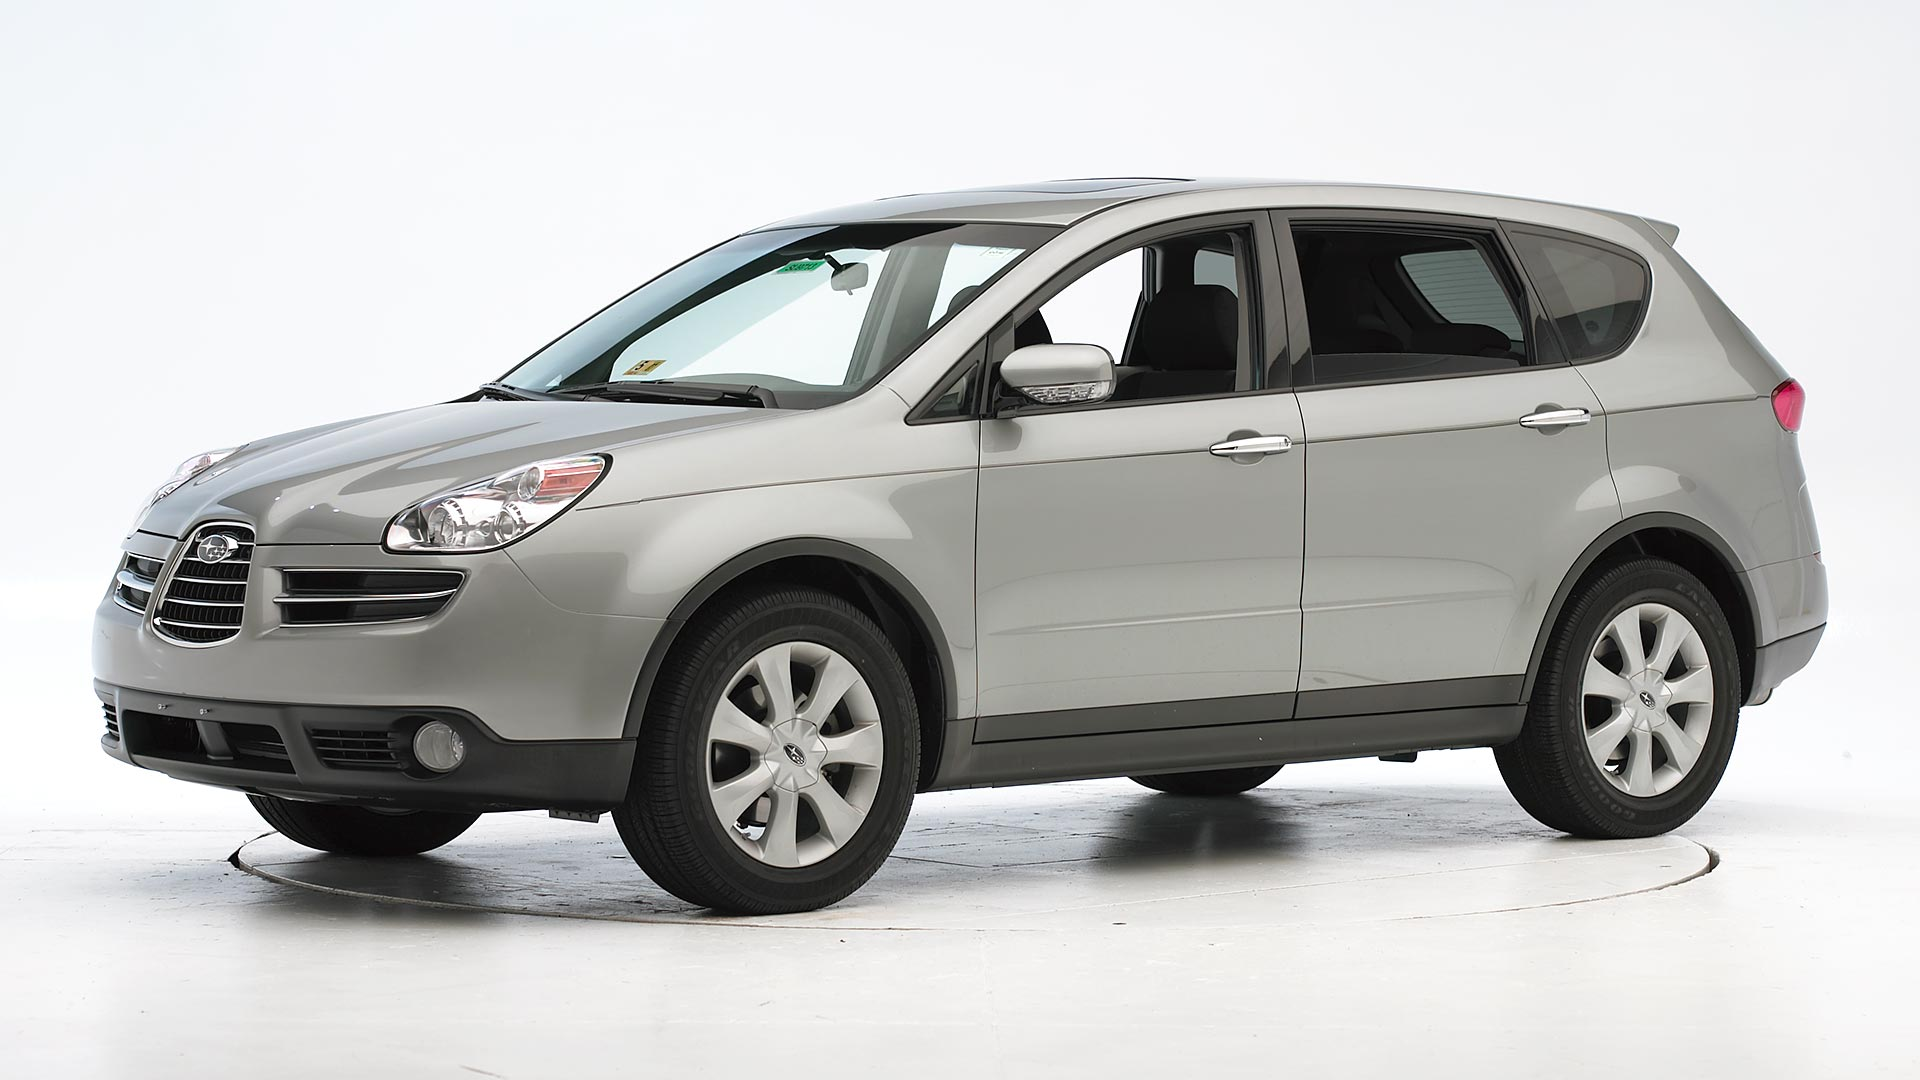 2006 Subaru Tribeca 4-door SUV